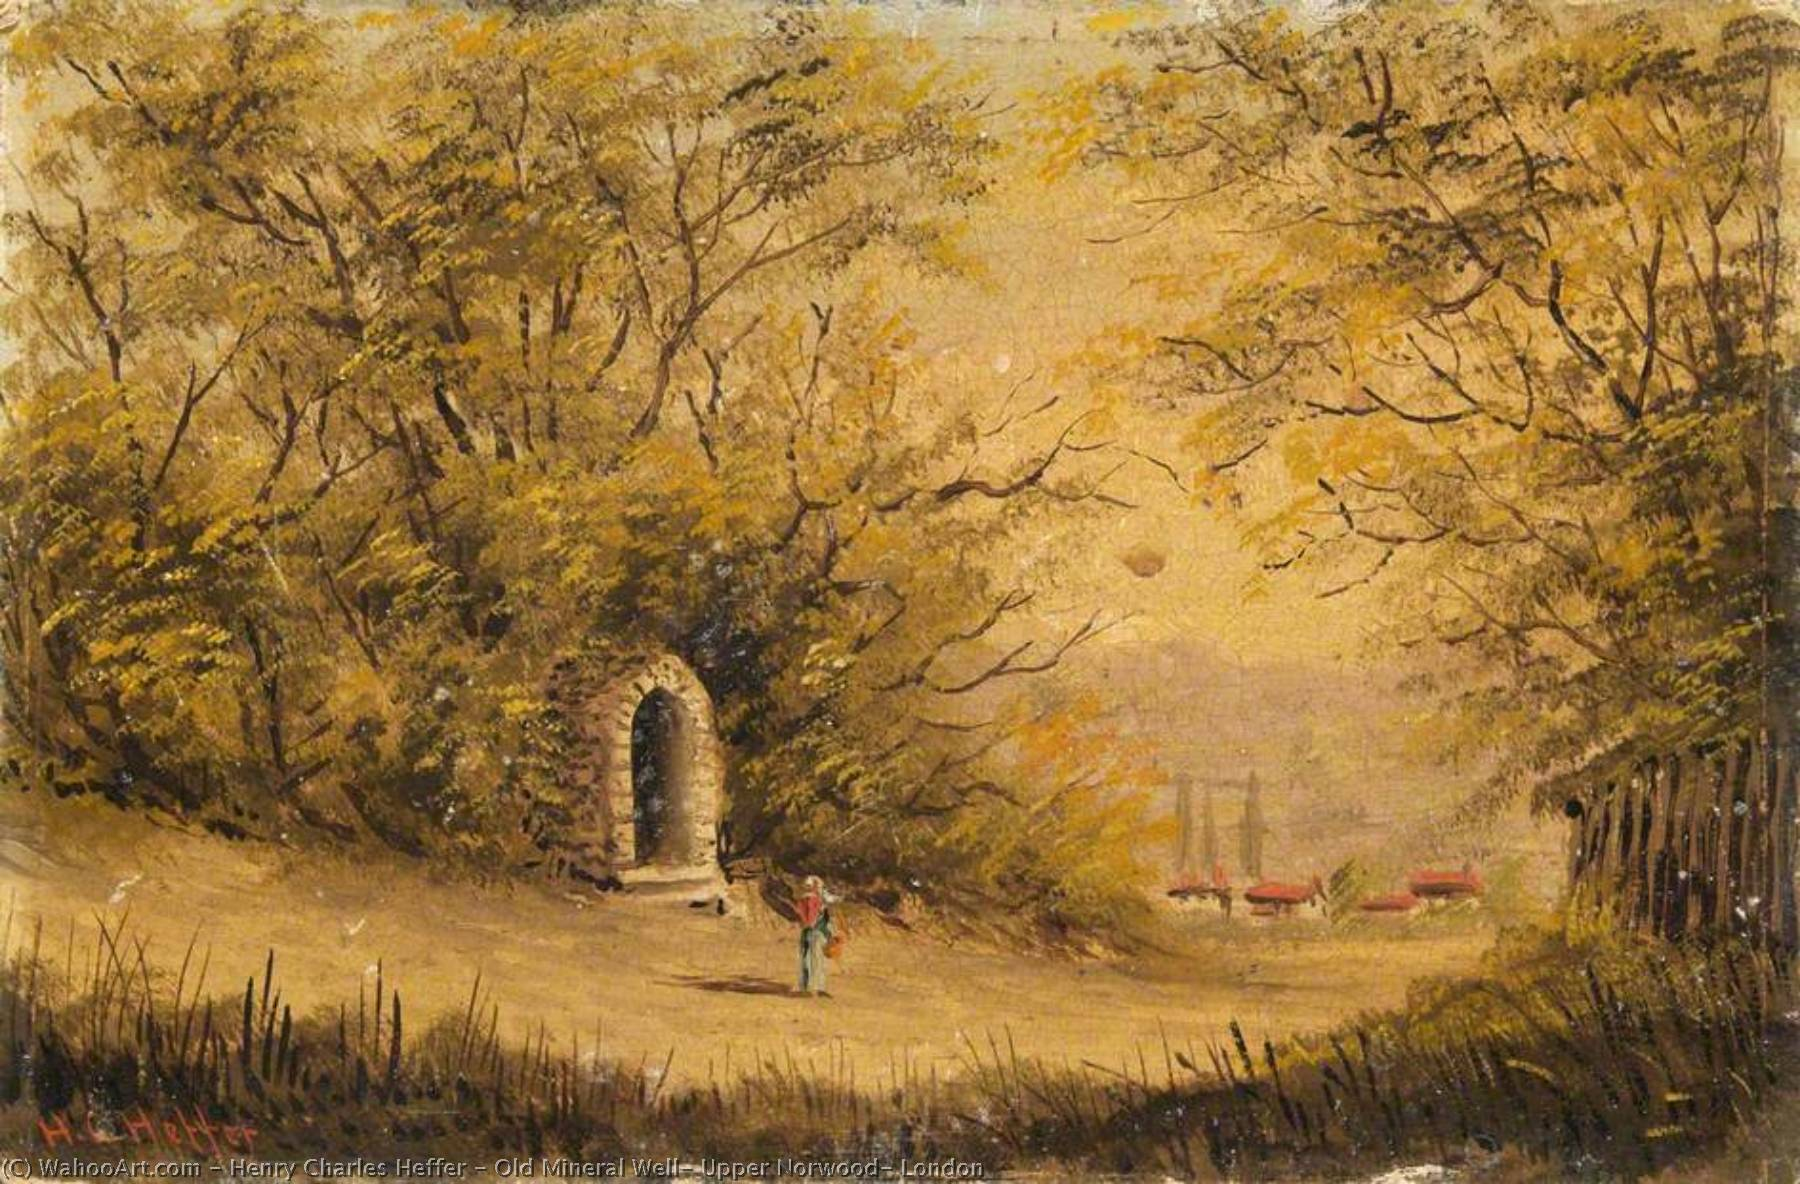 Old Mineral Well, Upper Norwood, London by Henry Charles Heffer | Art Reproduction | WahooArt.com